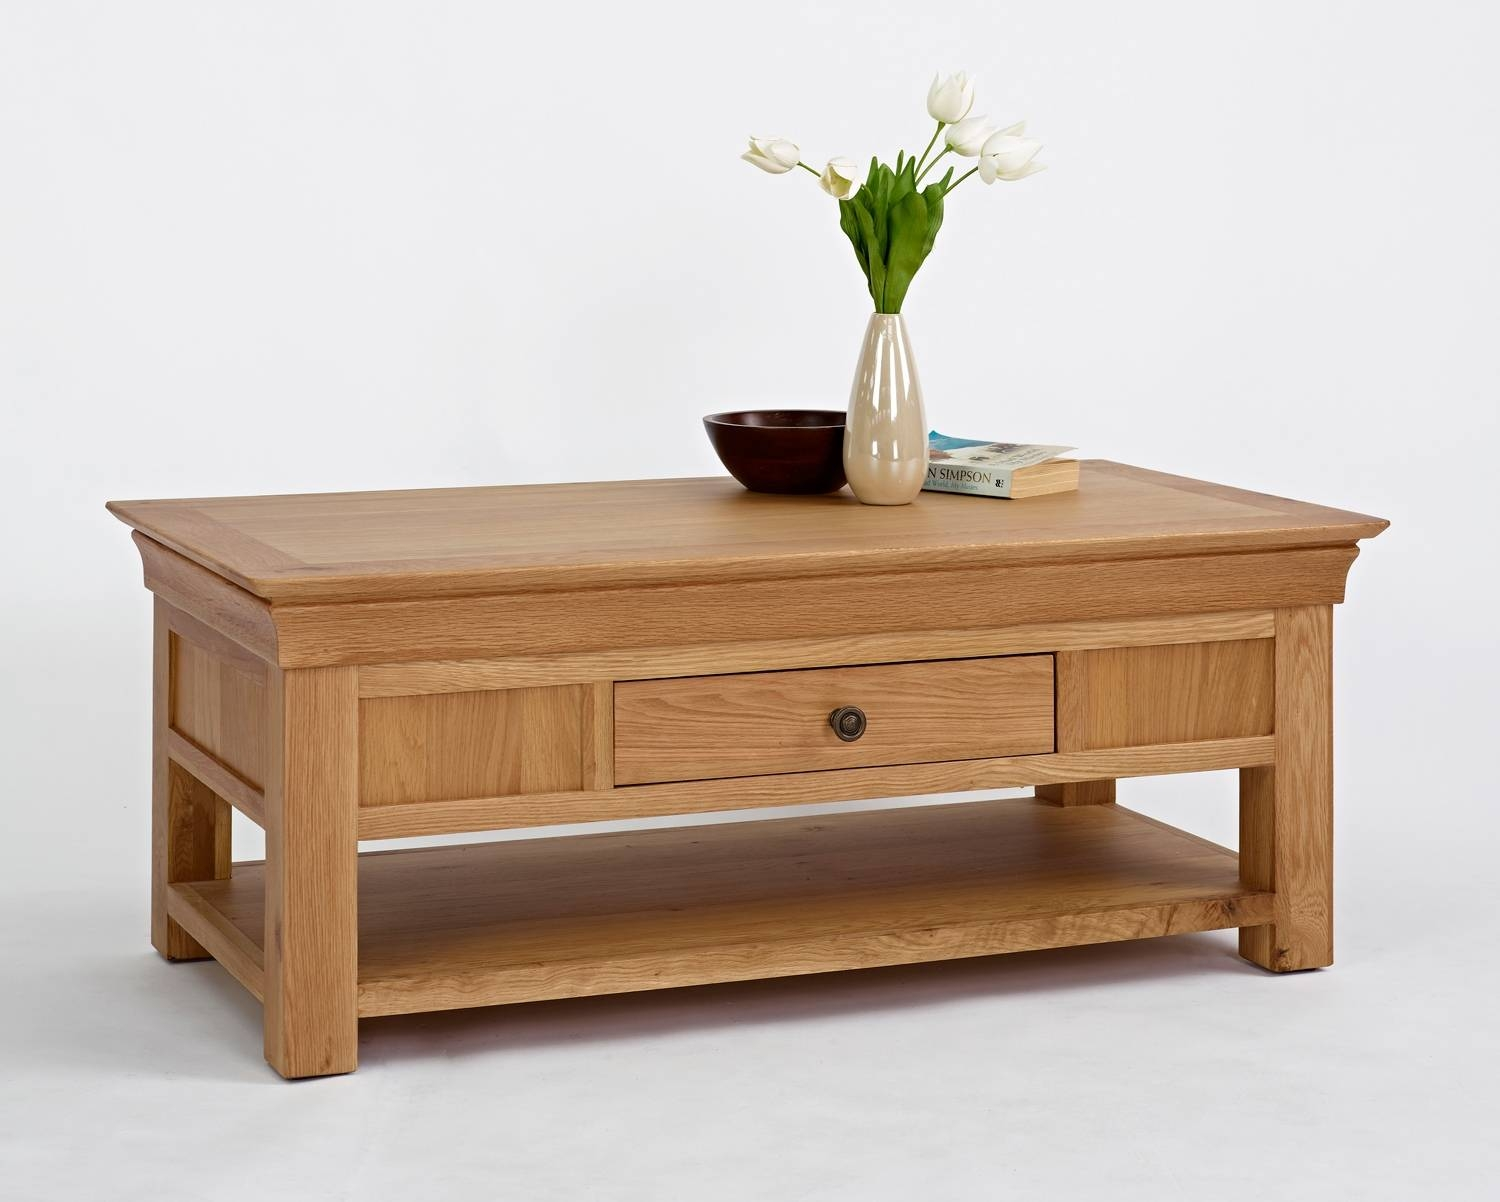 Oak Coffee Tables + Other Living Room Furniture – Oak Furniture Throughout Large Square Oak Coffee Tables (View 12 of 15)